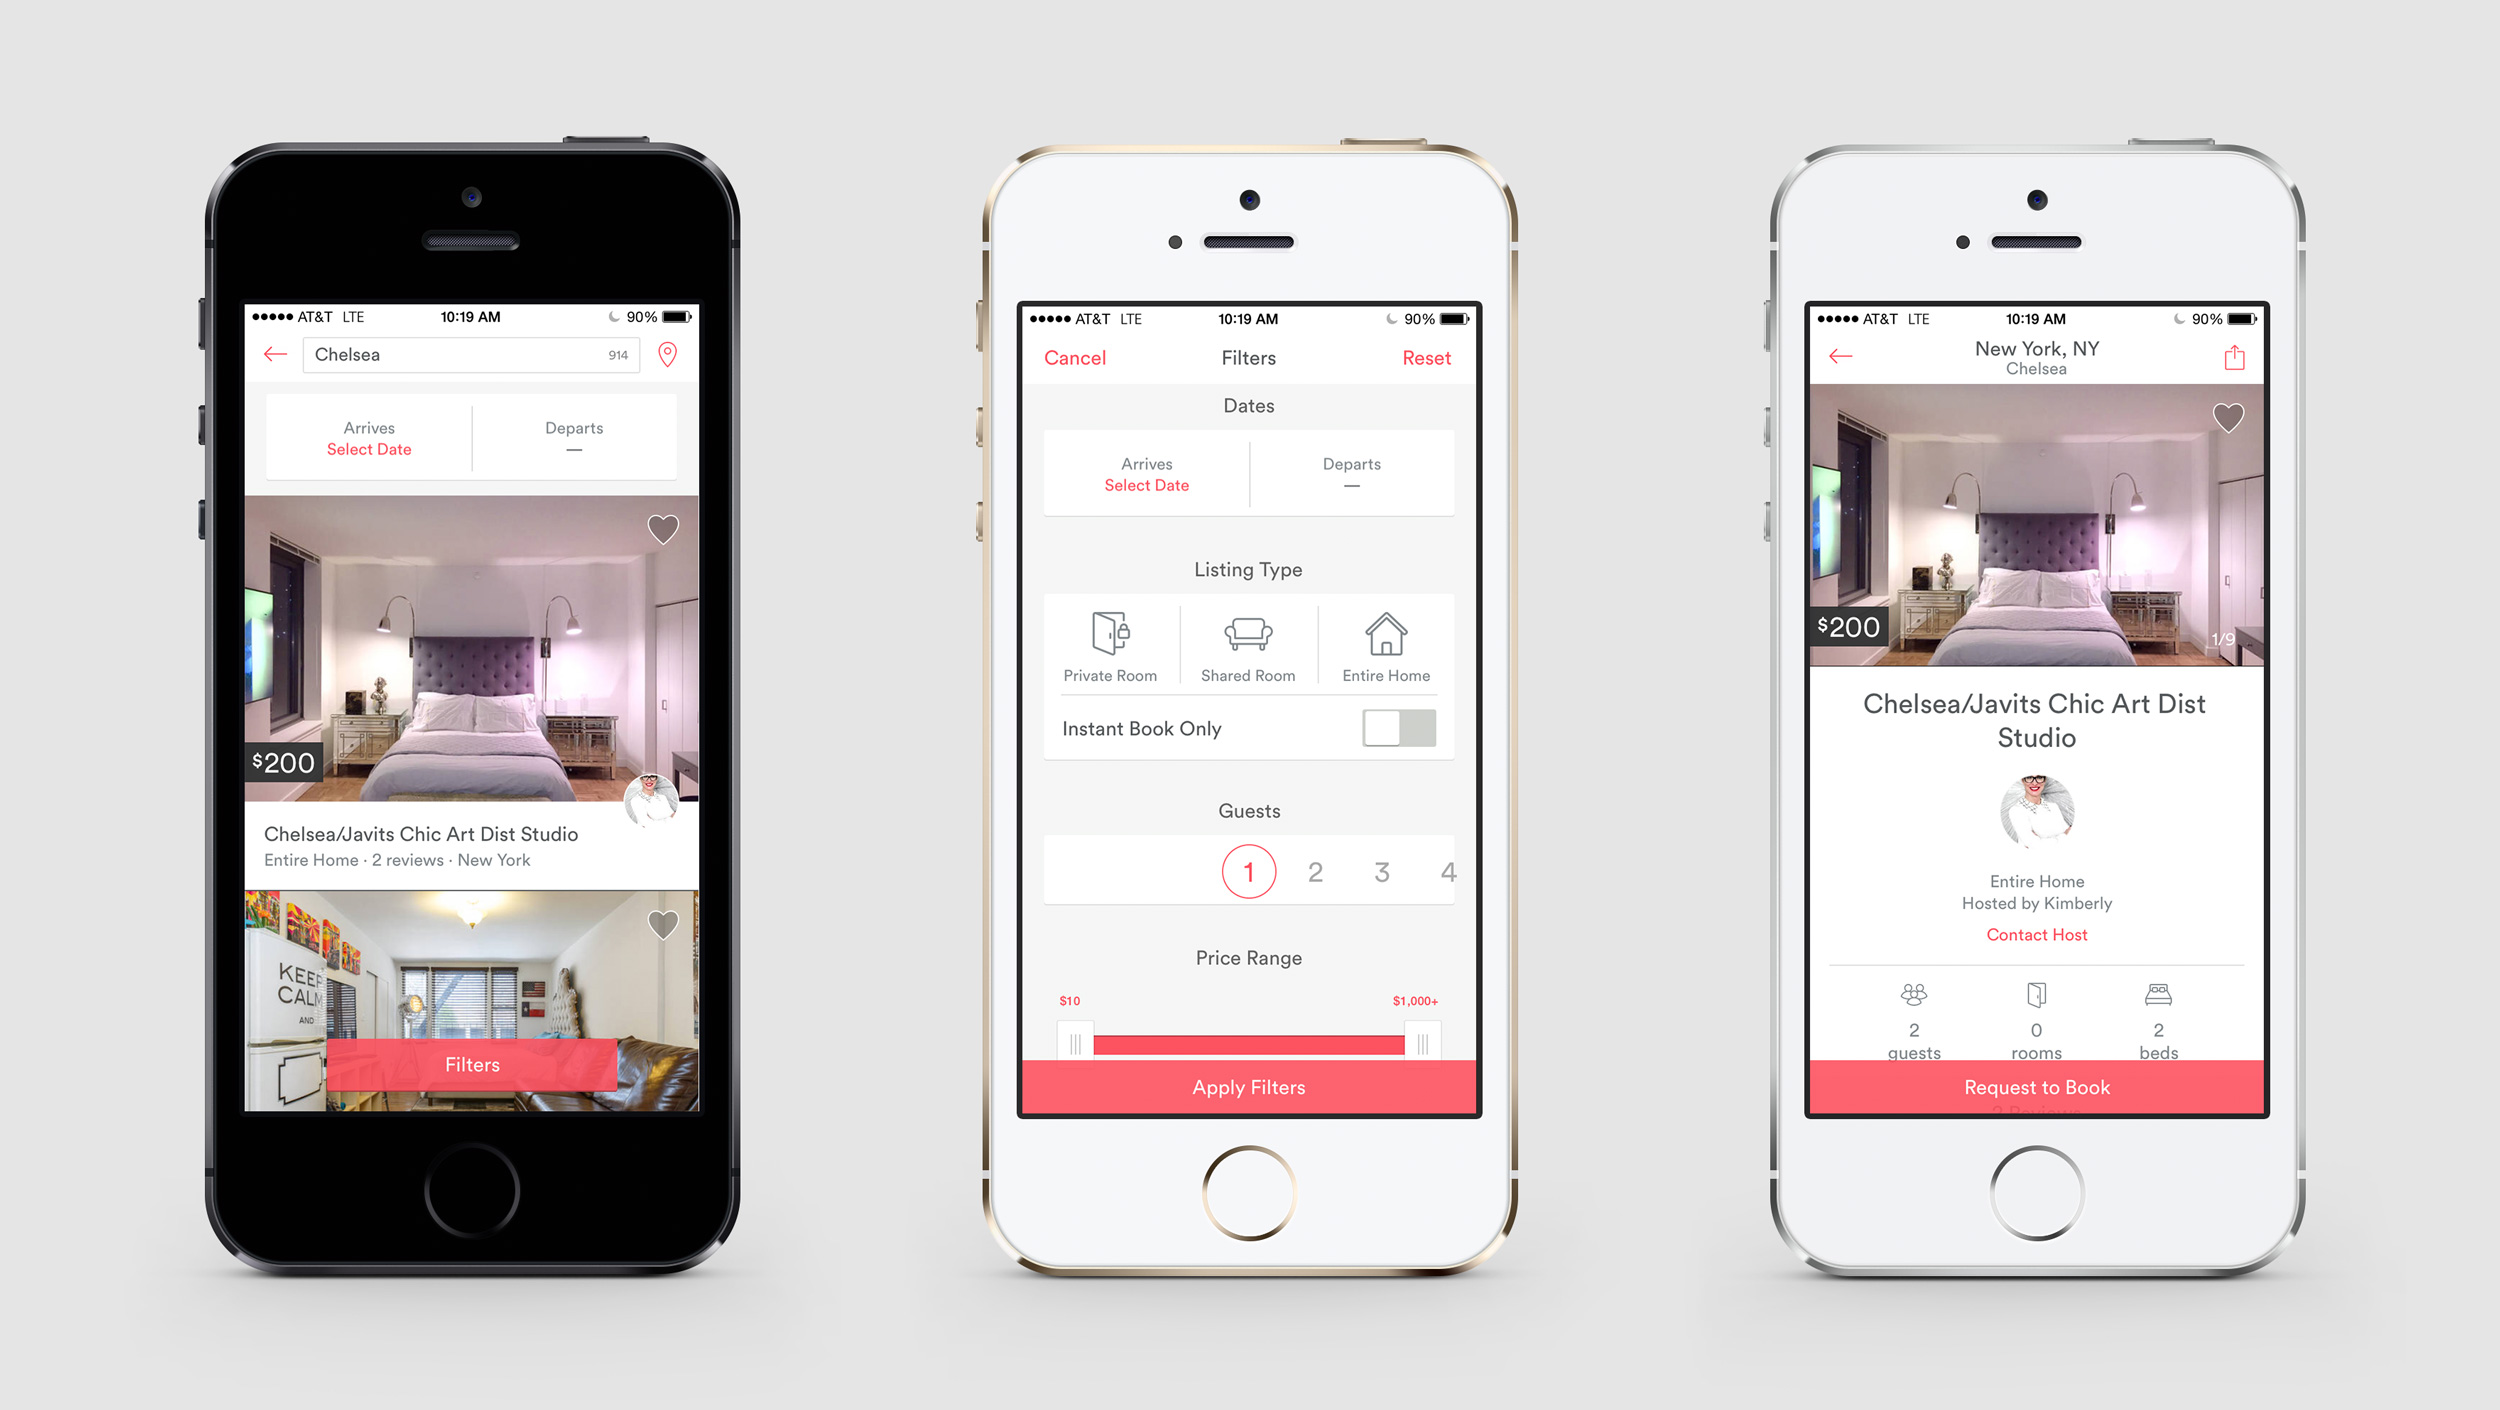 Airbnb Identity Website App 2014 Redesign Fonts In Use